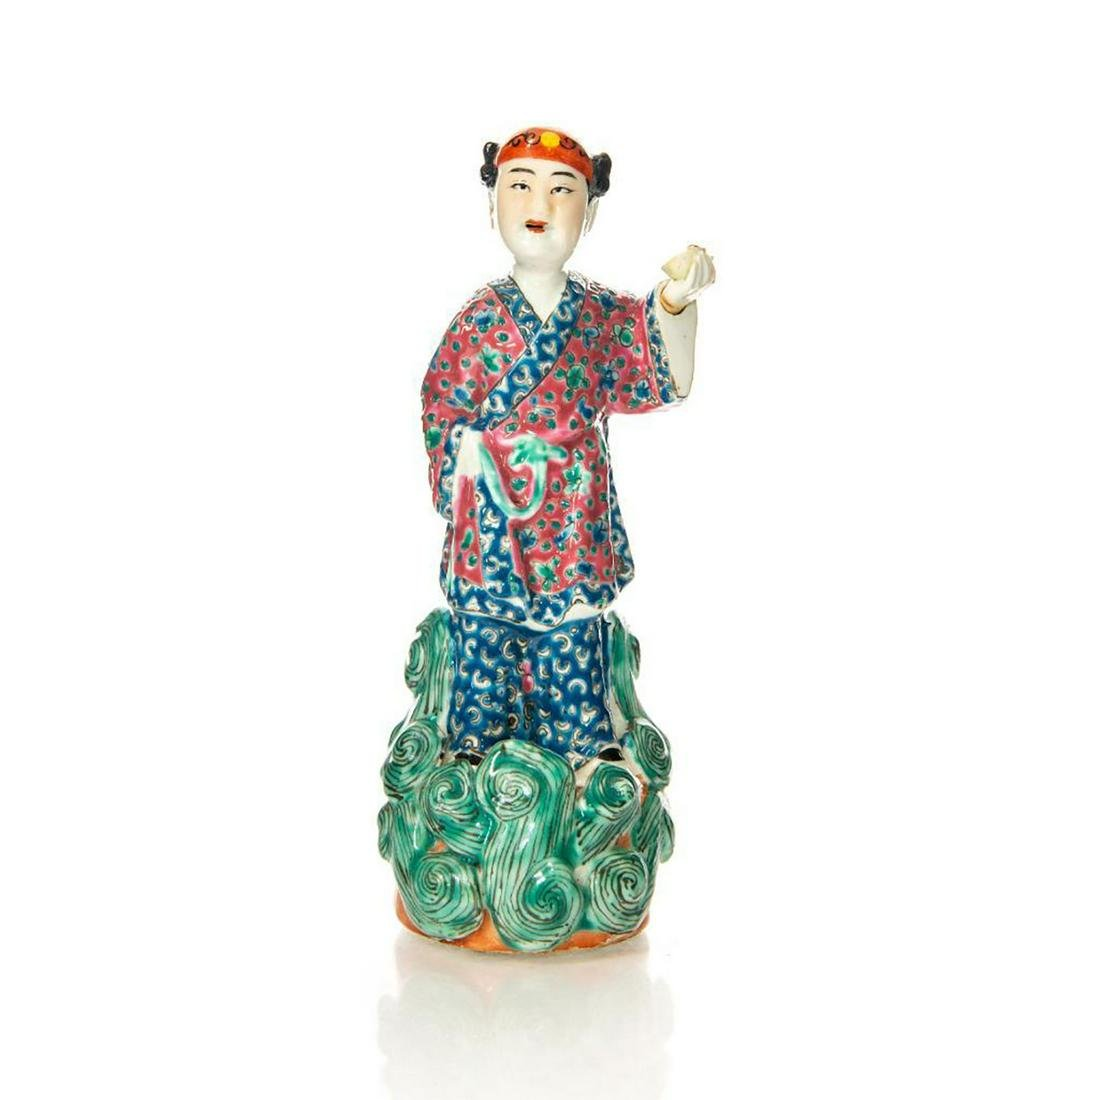 ANTIQUE CHINESE PORCELAIN FIGURINE OF CHILD